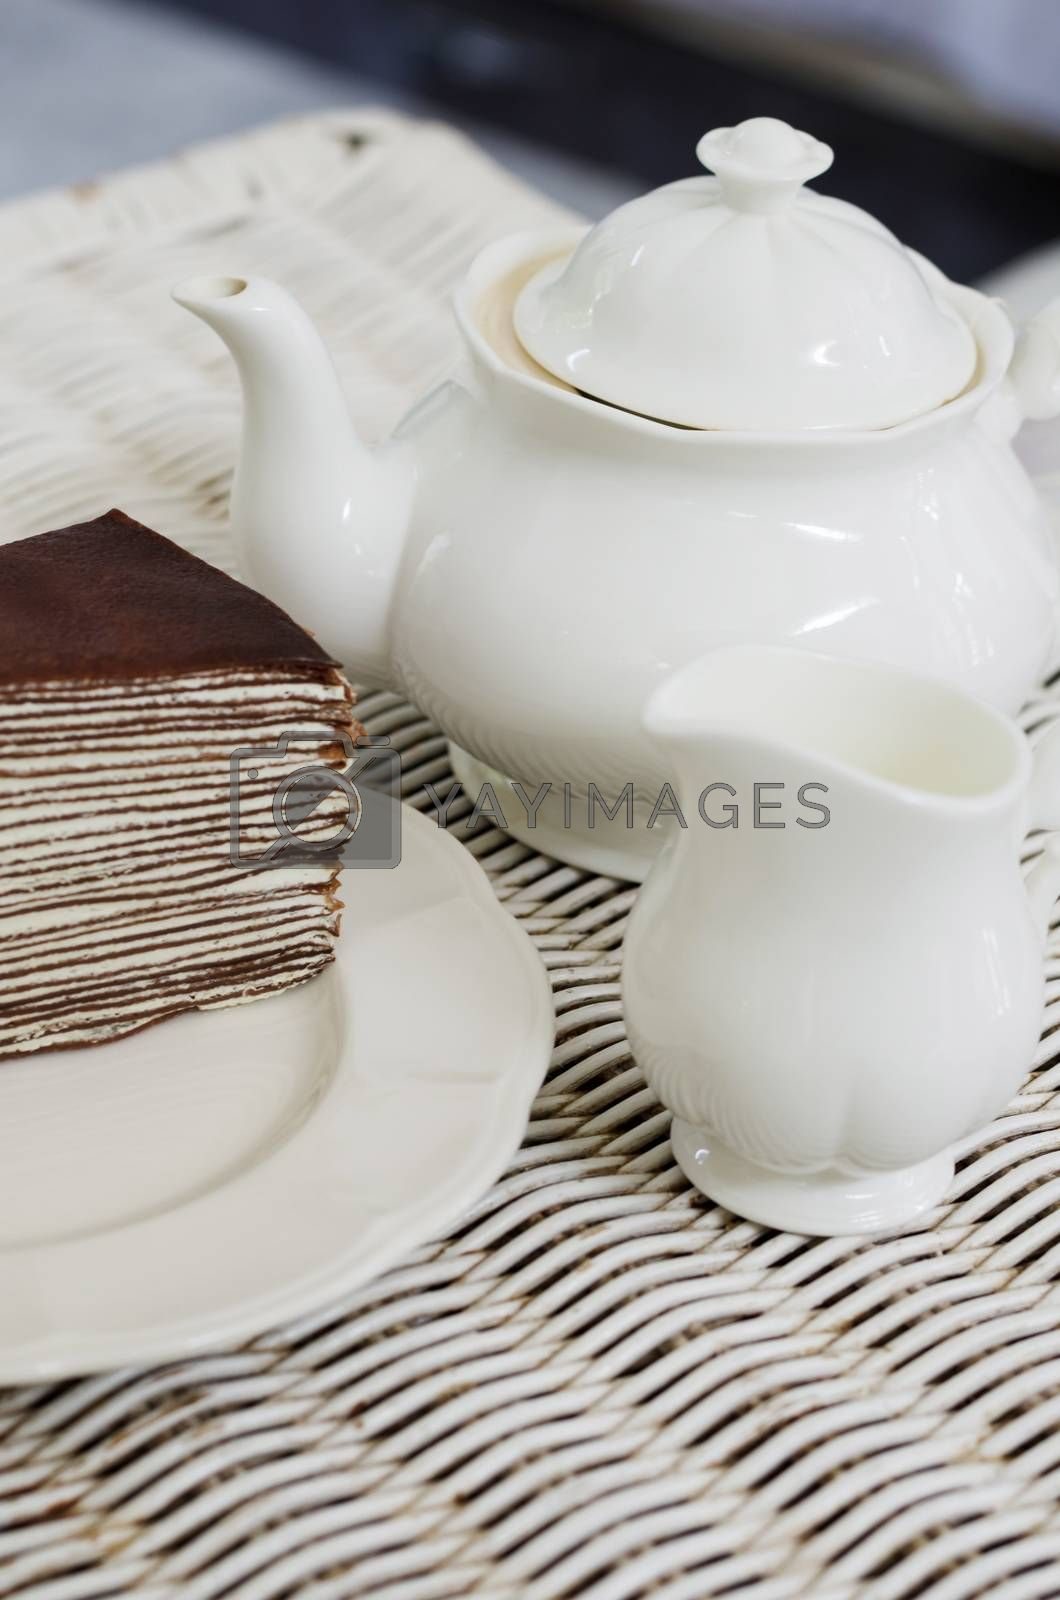 Teapot with chocolate crape cake on weave texture table